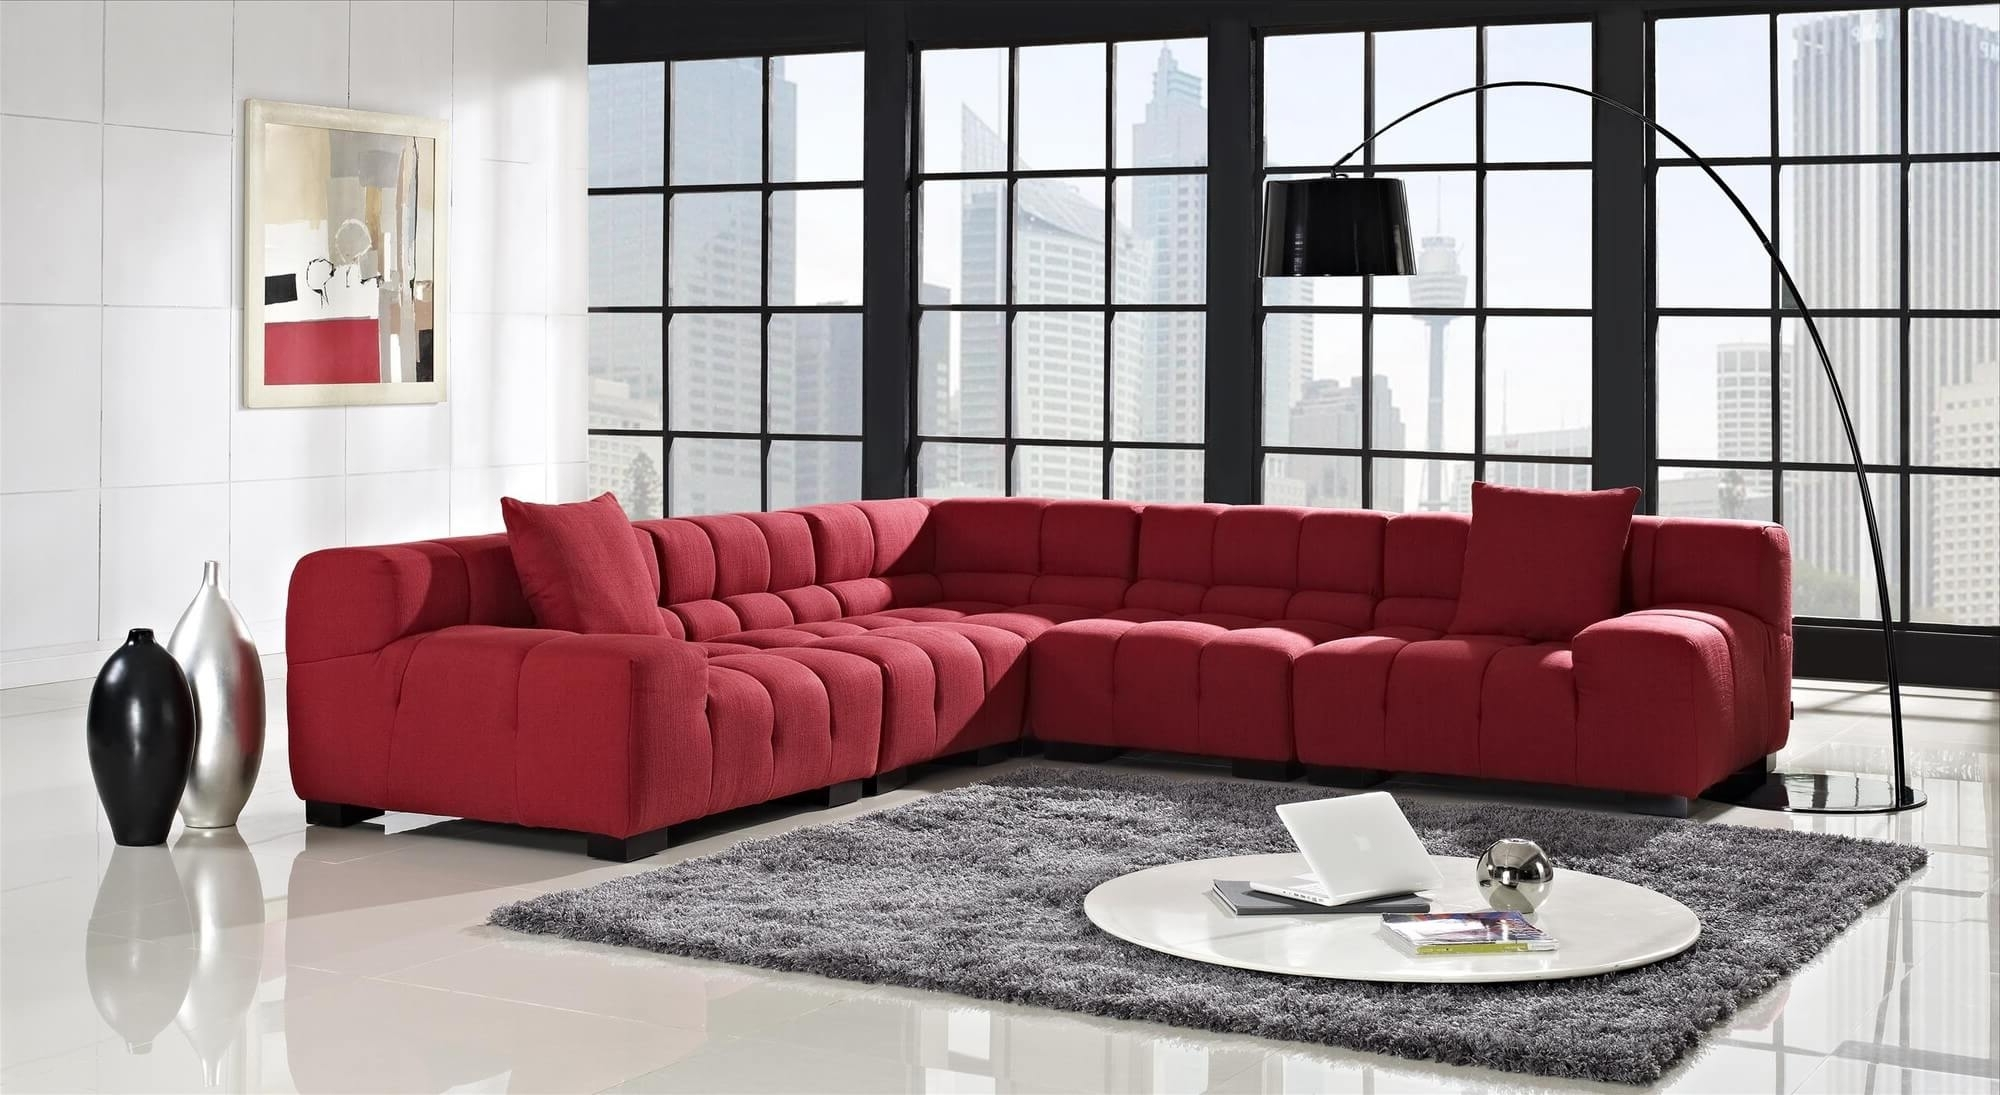 Modern Sectional Sofas For Small Spaces Pertaining To Fashionable Loveseat Sectional Small Sectional Sofas For Small Spaces (View 13 of 20)